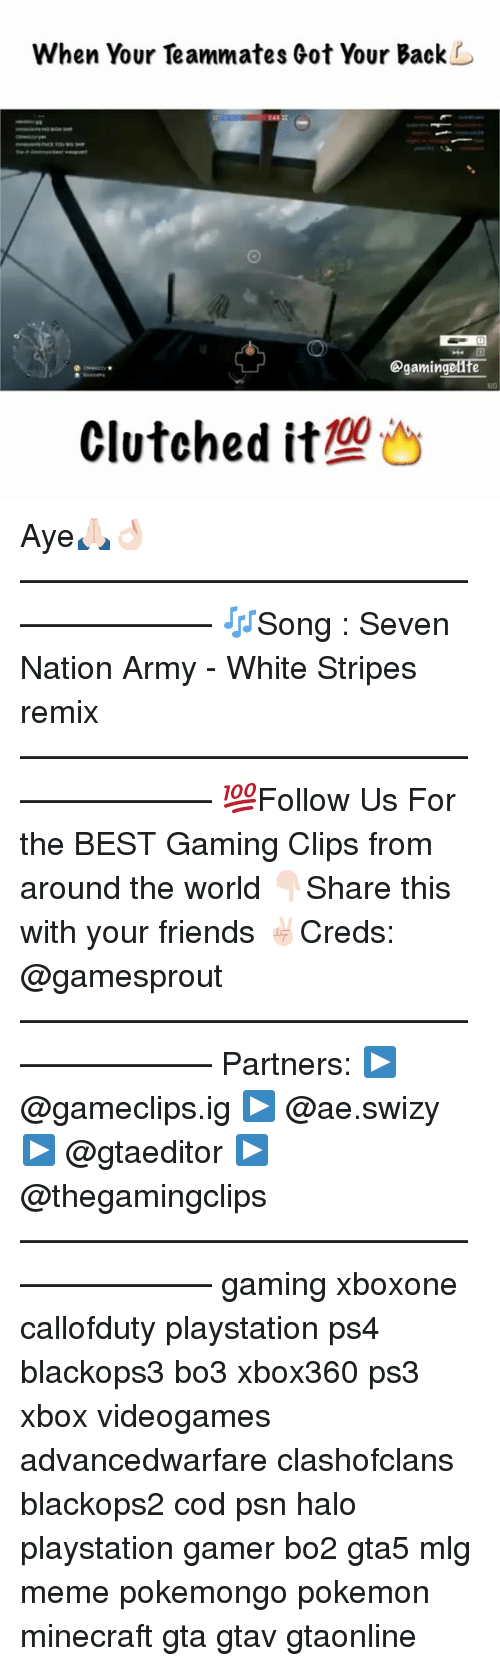 The Best Games: When Your Teammates Got Your Back  Ogamingenfe  00  Clutched it Aye🙏🏻👌🏻———————————————————— 🎶Song : Seven Nation Army - White Stripes remix ———————————————————— 💯Follow Us For the BEST Gaming Clips from around the world 👇🏻Share this with your friends ✌🏻️Creds: @gamesprout ———————————————————— Partners: ▶️ @gameclips.ig ▶️ @ae.swizy ▶️ @gtaeditor ️▶️ @thegamingclips ———————————————————— gaming xboxone callofduty playstation ps4 blackops3 bo3 xbox360 ps3 xbox videogames advancedwarfare clashofclans blackops2 cod psn halo playstation gamer bo2 gta5 mlg meme pokemongo pokemon minecraft gta gtav gtaonline